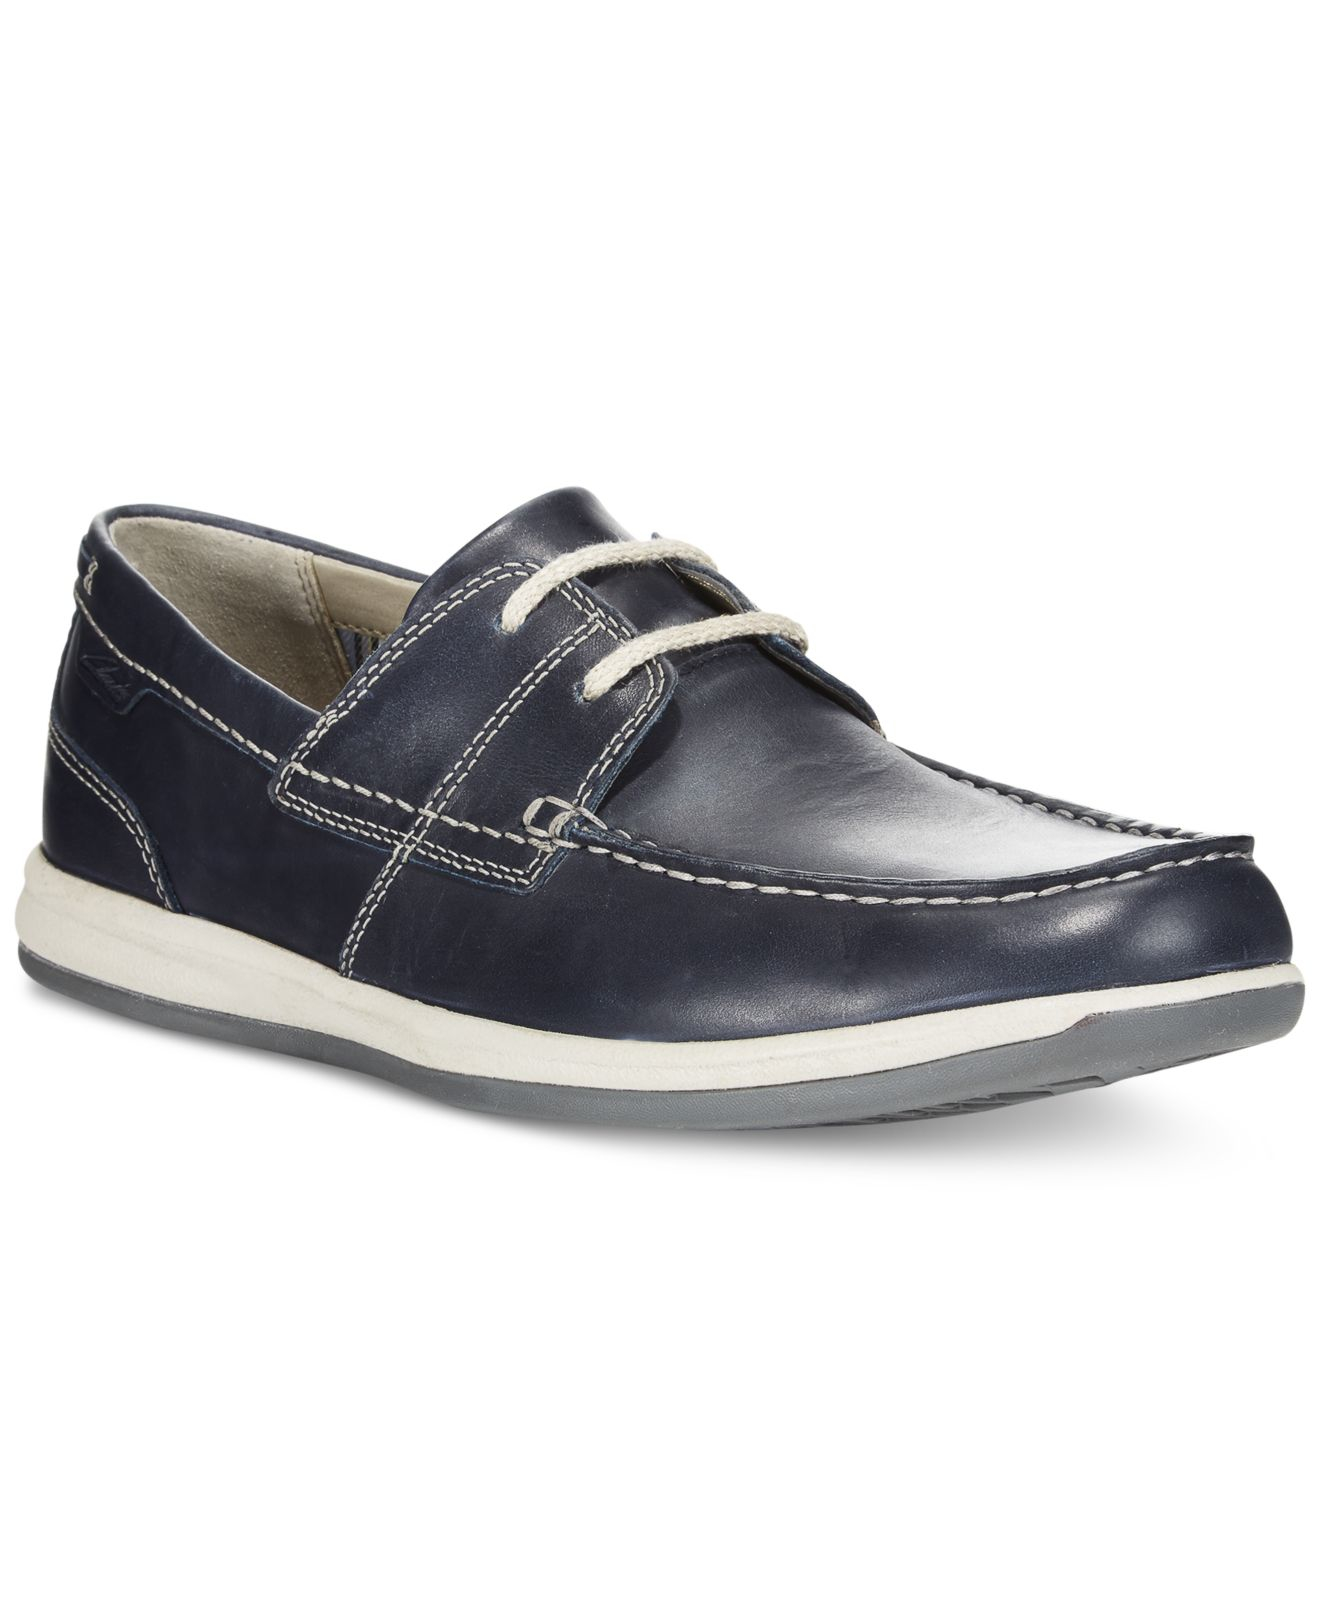 Clarks Work Shoes Mens